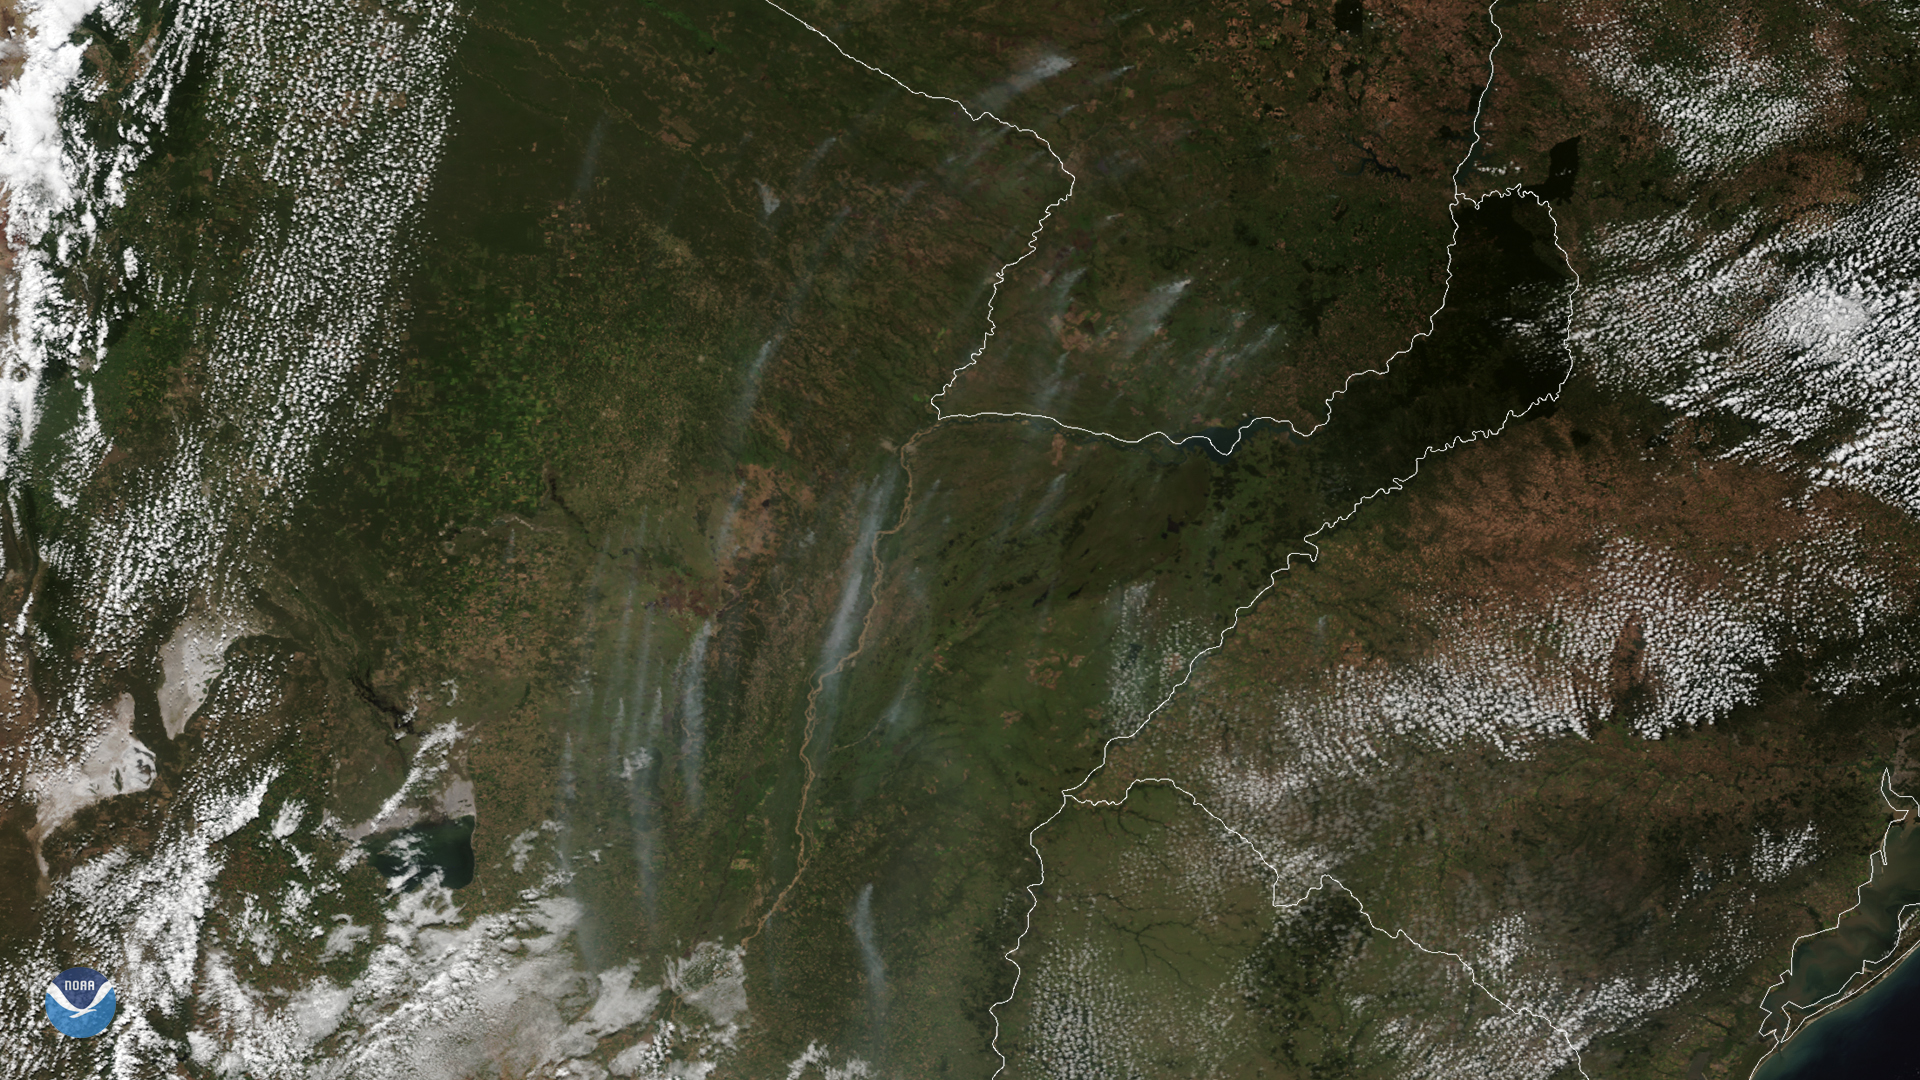 GOES-East Sees Smoke Plumes from Fires in Argentina and Paraguay